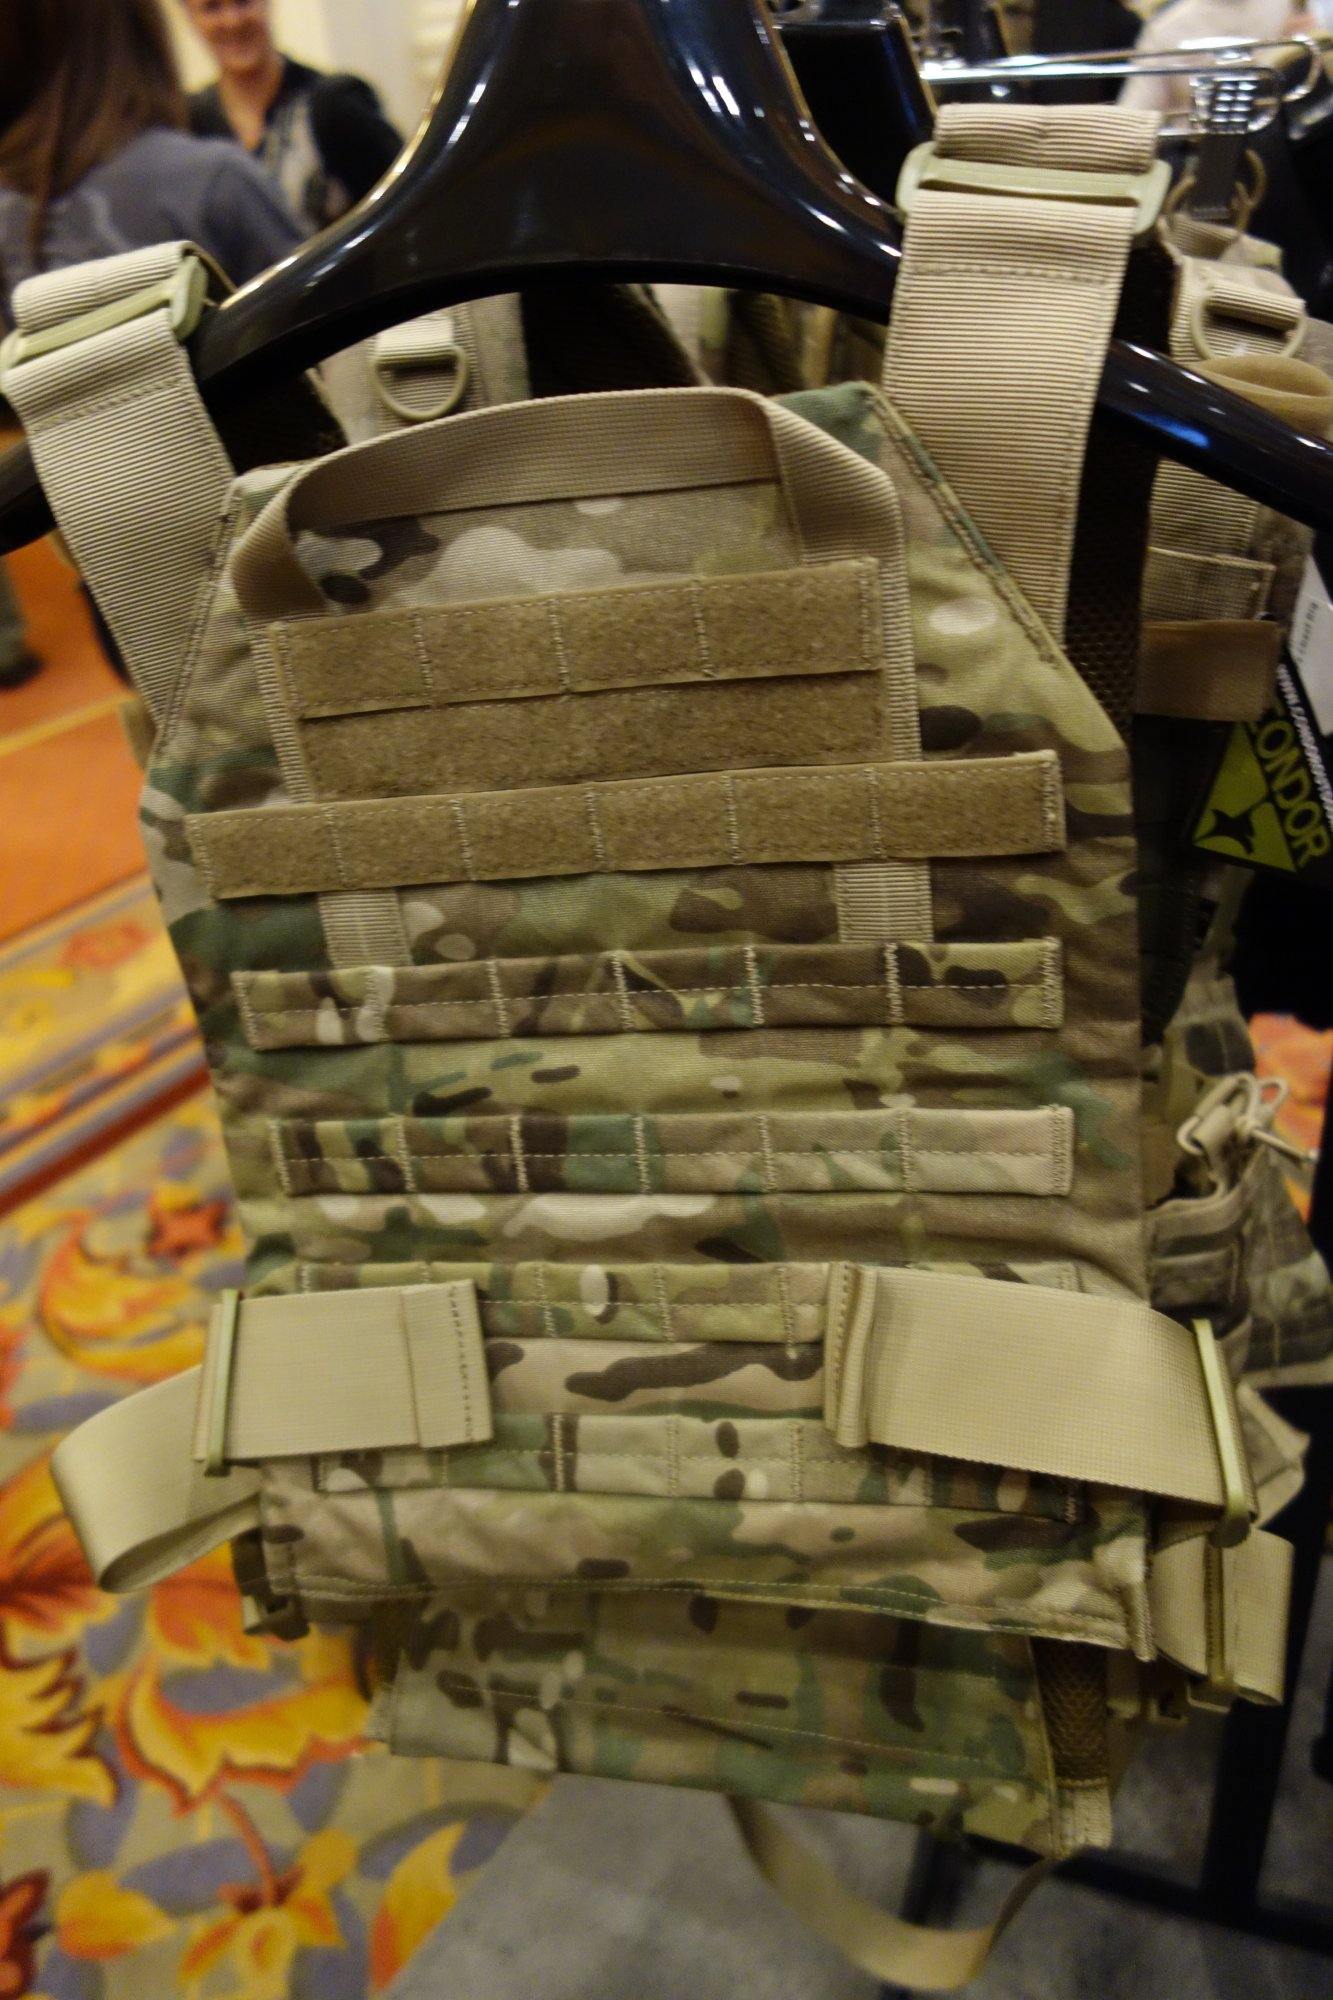 Condor Outdoor Sentry Tactical Armor Plate Carrier Prototype SHOT Show 2014 David Crane DefenseReview.com DR 2 Condor Sentry Lightweight Tactical Armor Plate Carrier Prototype: Lightweight Minimalist/Lo Pro/Lo Vis Tactical Body Armor/Tactical Vest with Fast Adjustable Shoulder Straps and Side Straps